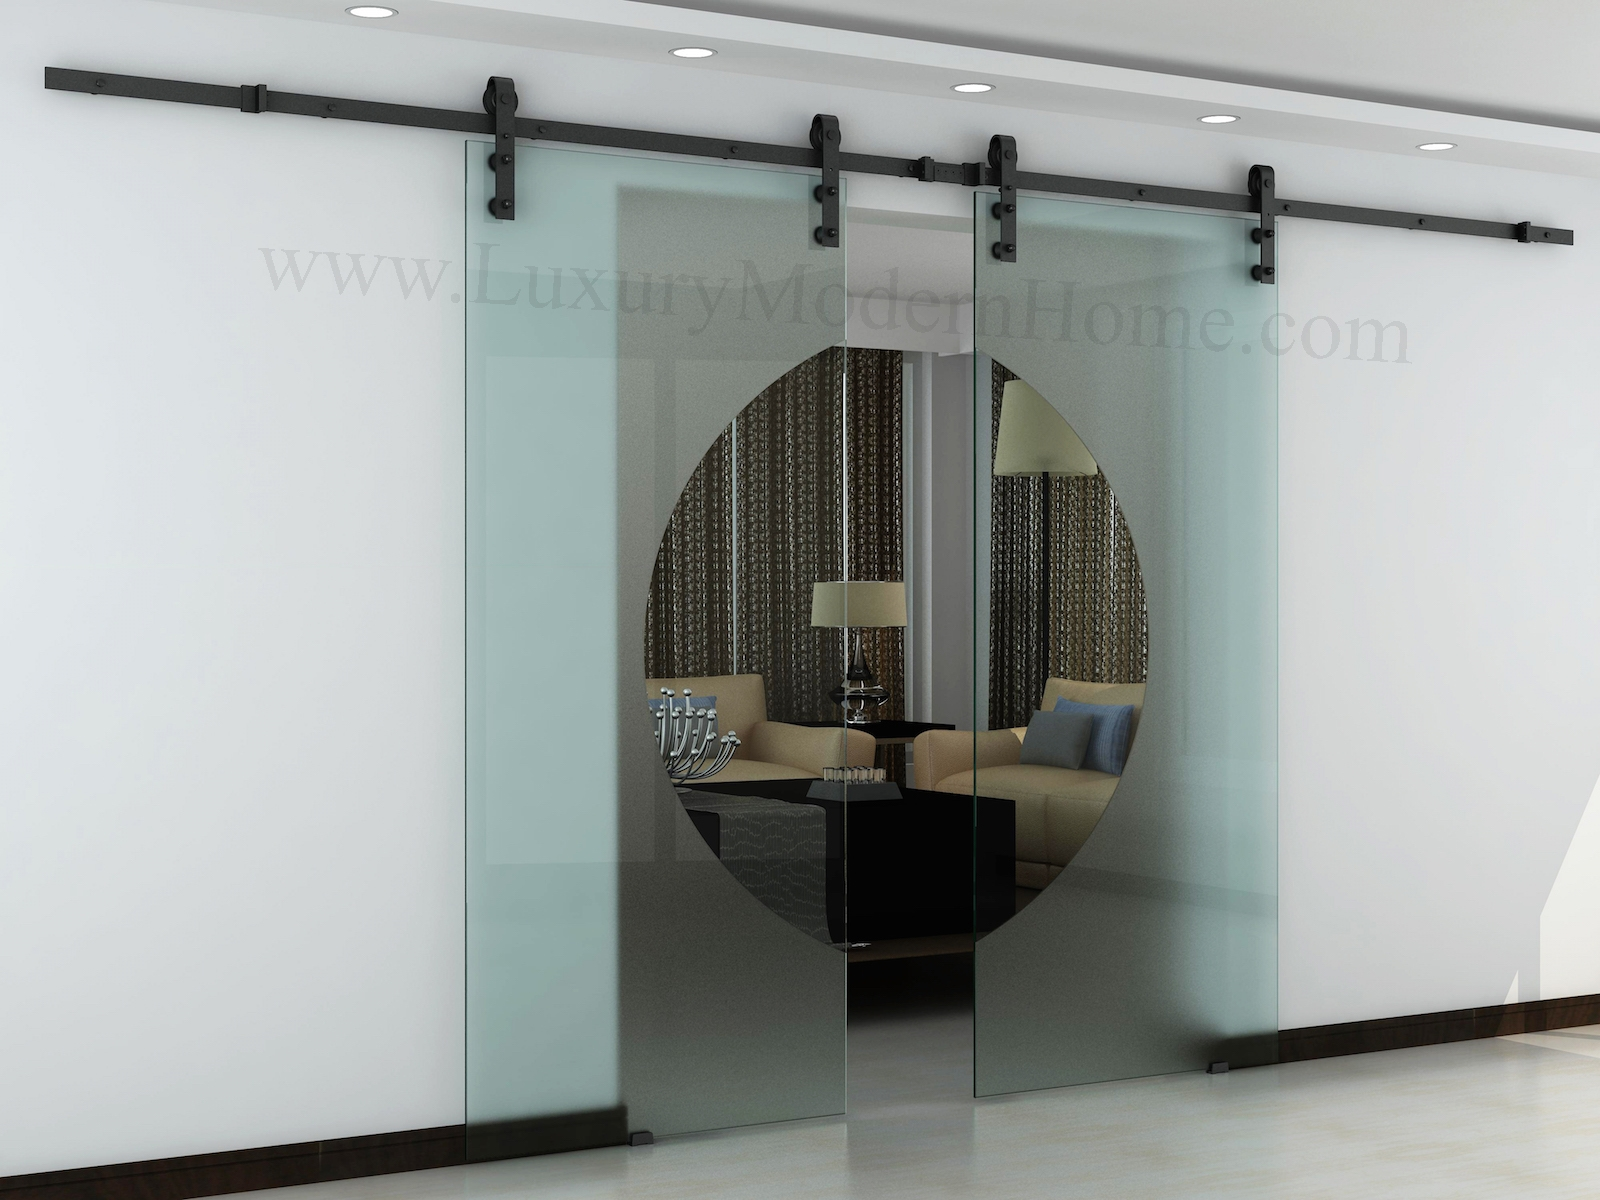 Sliding Barn Door Glass Hardwareaustin double glass sliding barn door hardware idolza